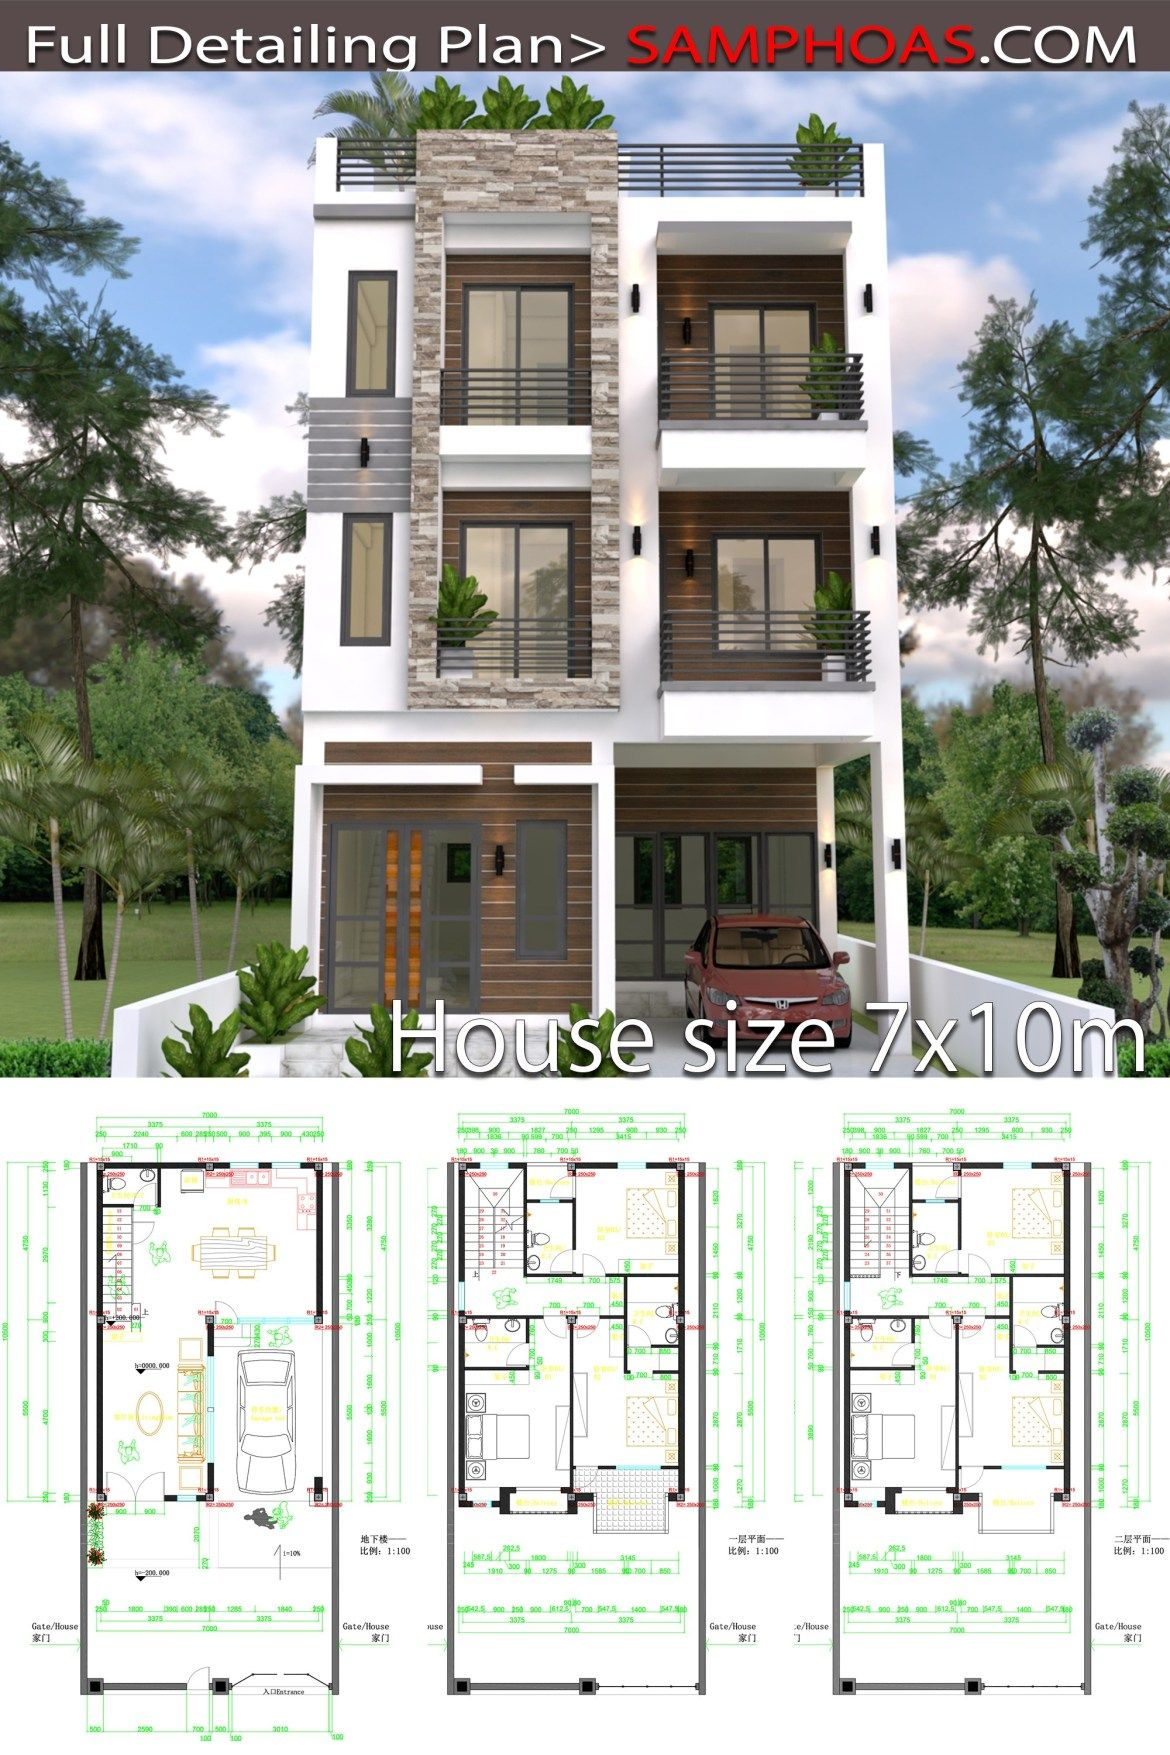 Pin By Zikra Juita On Planos House Arch Design House Construction Plan Home Building Design